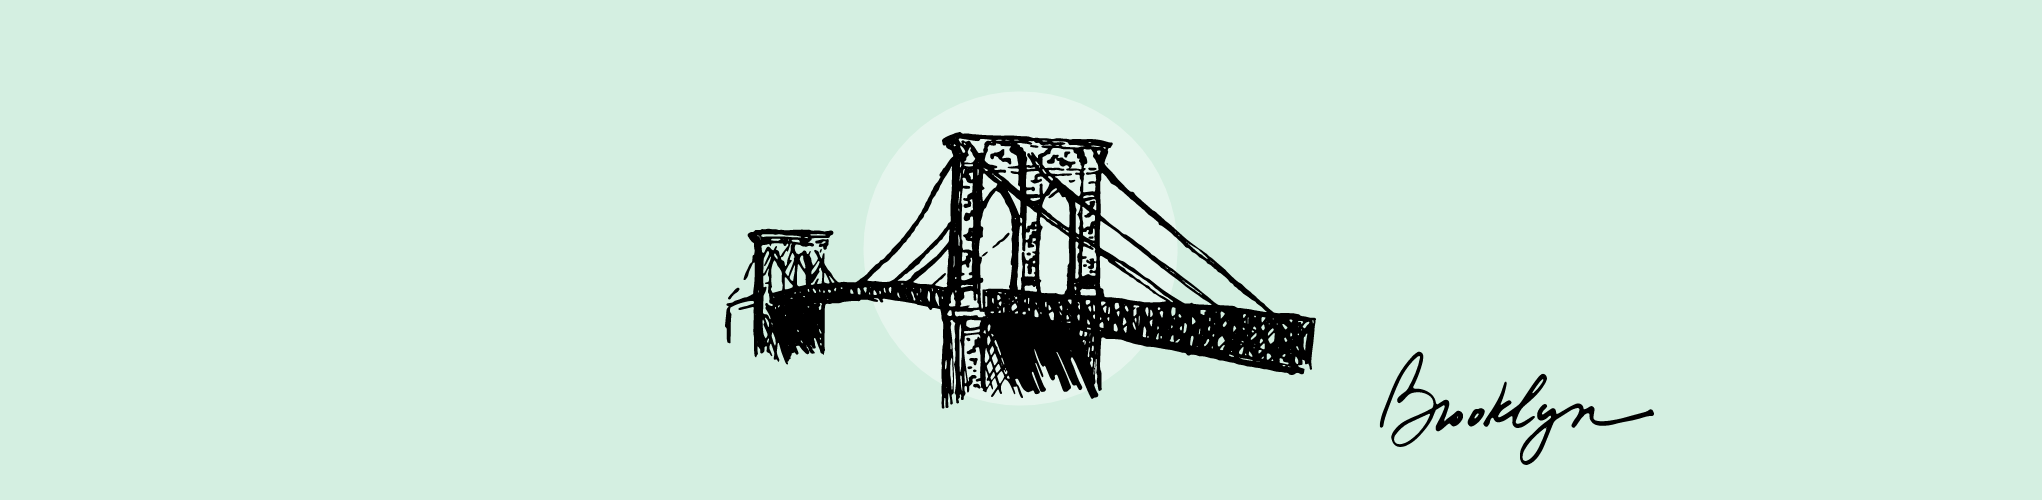 Brooklyn is the most populous borough of  New York City and 44% of the population works in Brooklyn. The borough is also known for being a convenient back office for New York's businesses.